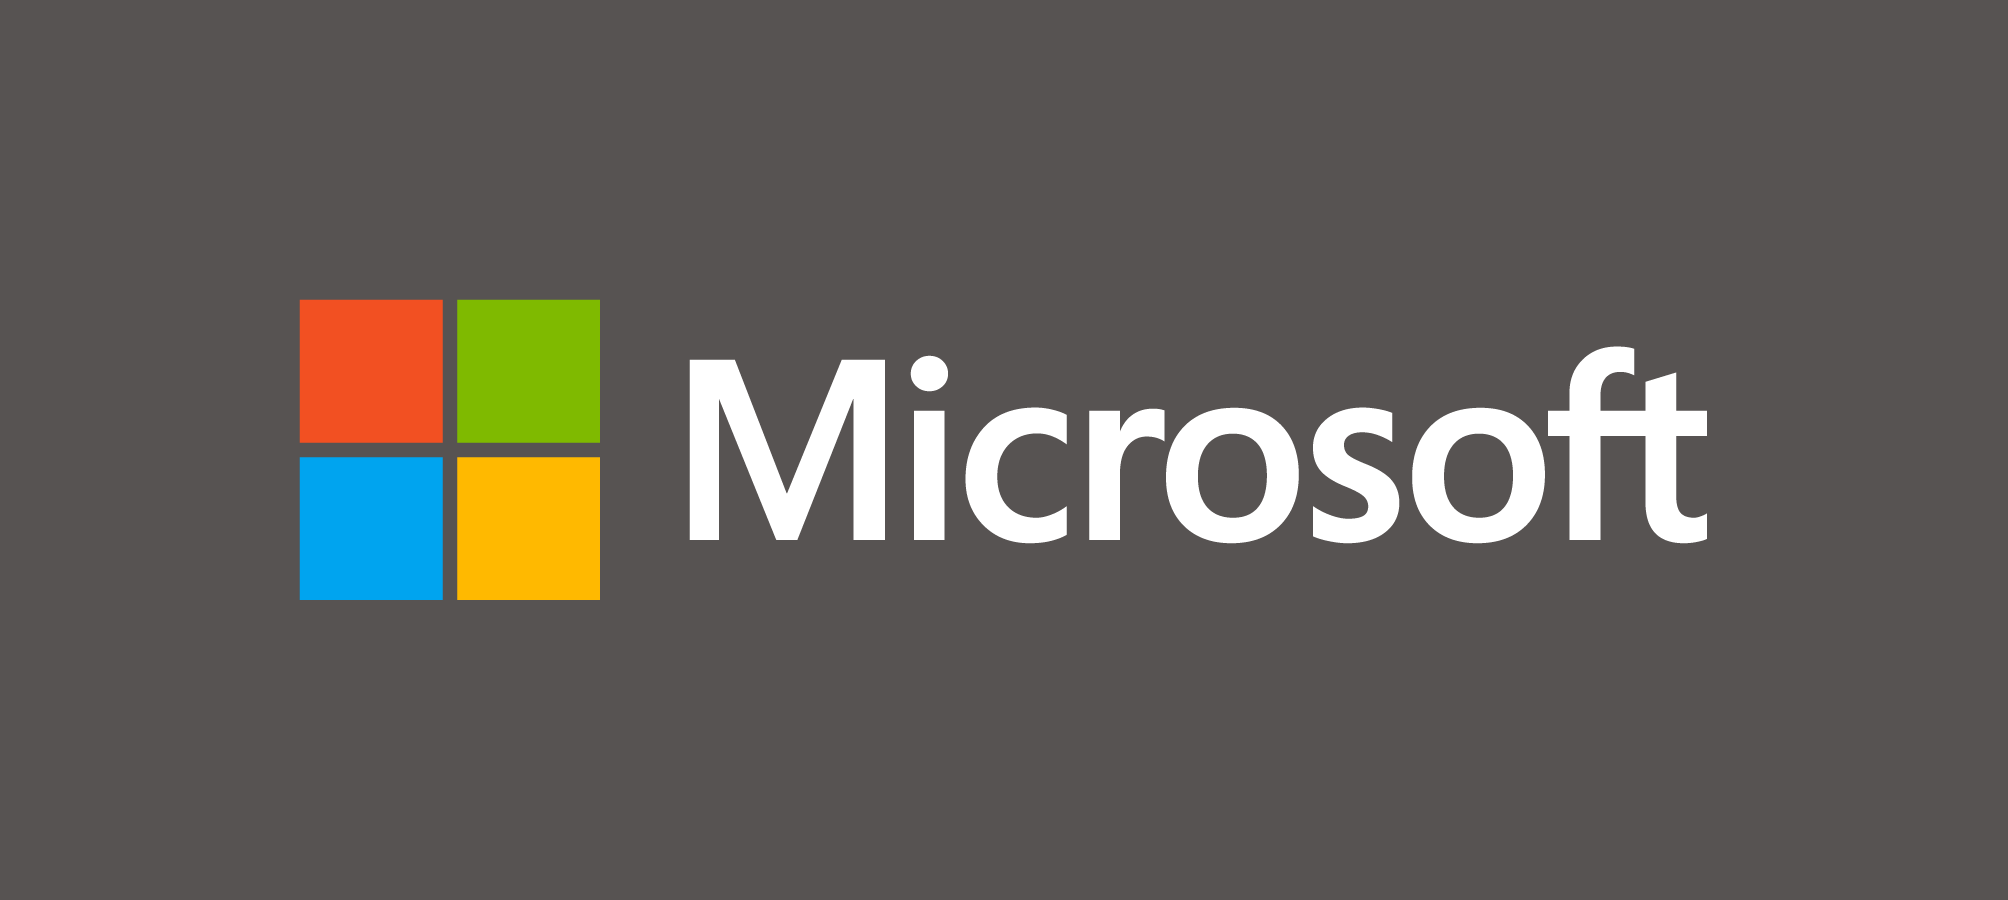 First office in India for Microsoft's venture fund; will pursue investment opportunities across the country